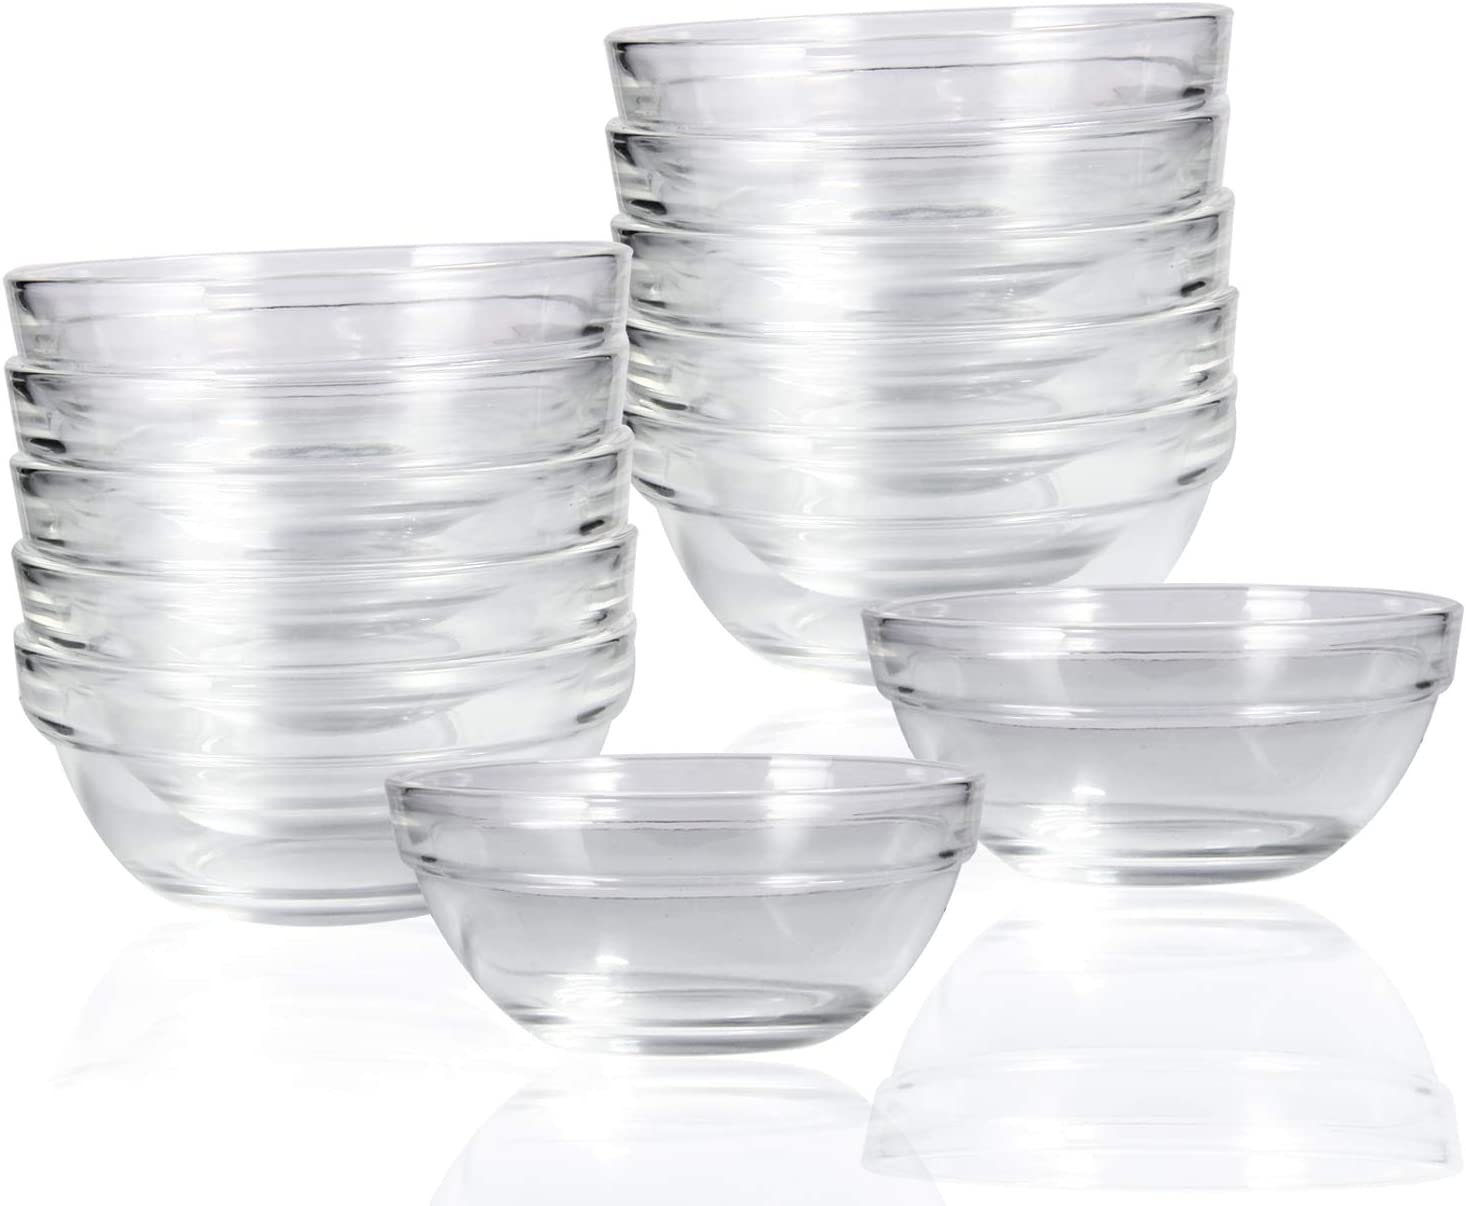 Dessert and Candy Dishes or Nut Bowls 12 PCS 4 Inch Glass Ramekins Bowls,WERTIOO Mini/Glass Bowls for Kitchen Prep Dips